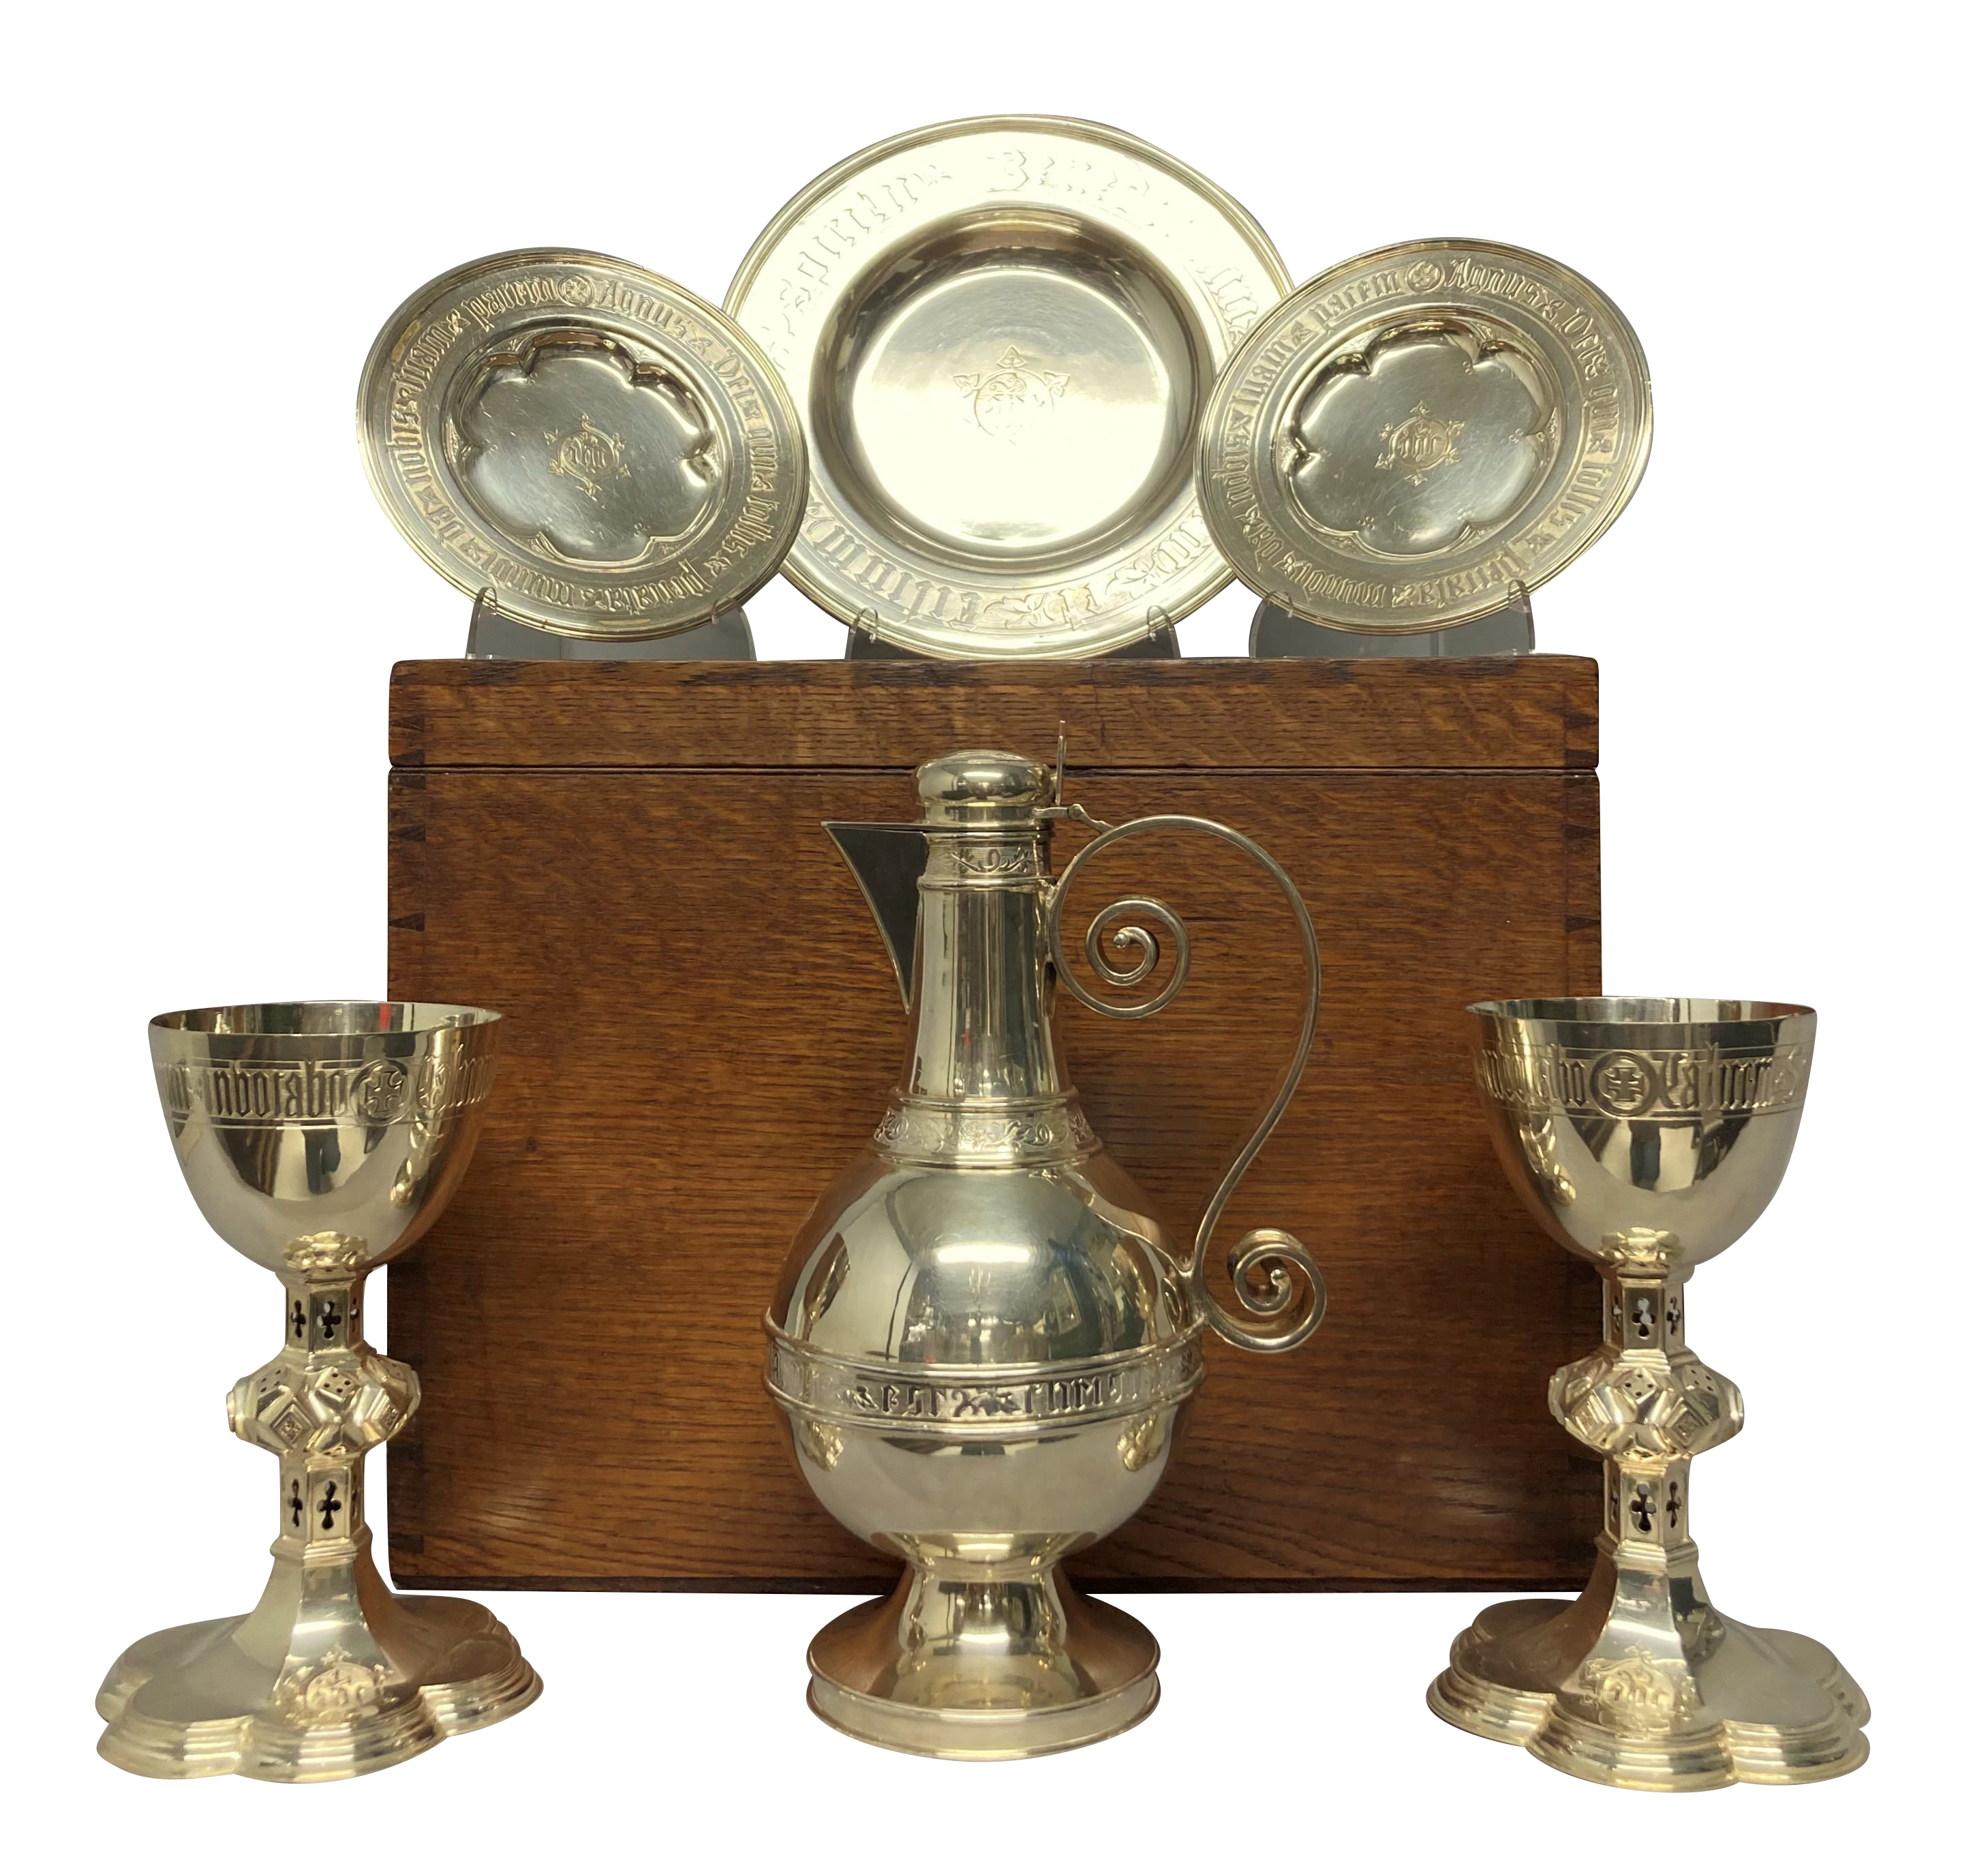 A SILVER COMMUNION SET WITH ORIGINAL BOX BY HENRY WILKINSON & SONS